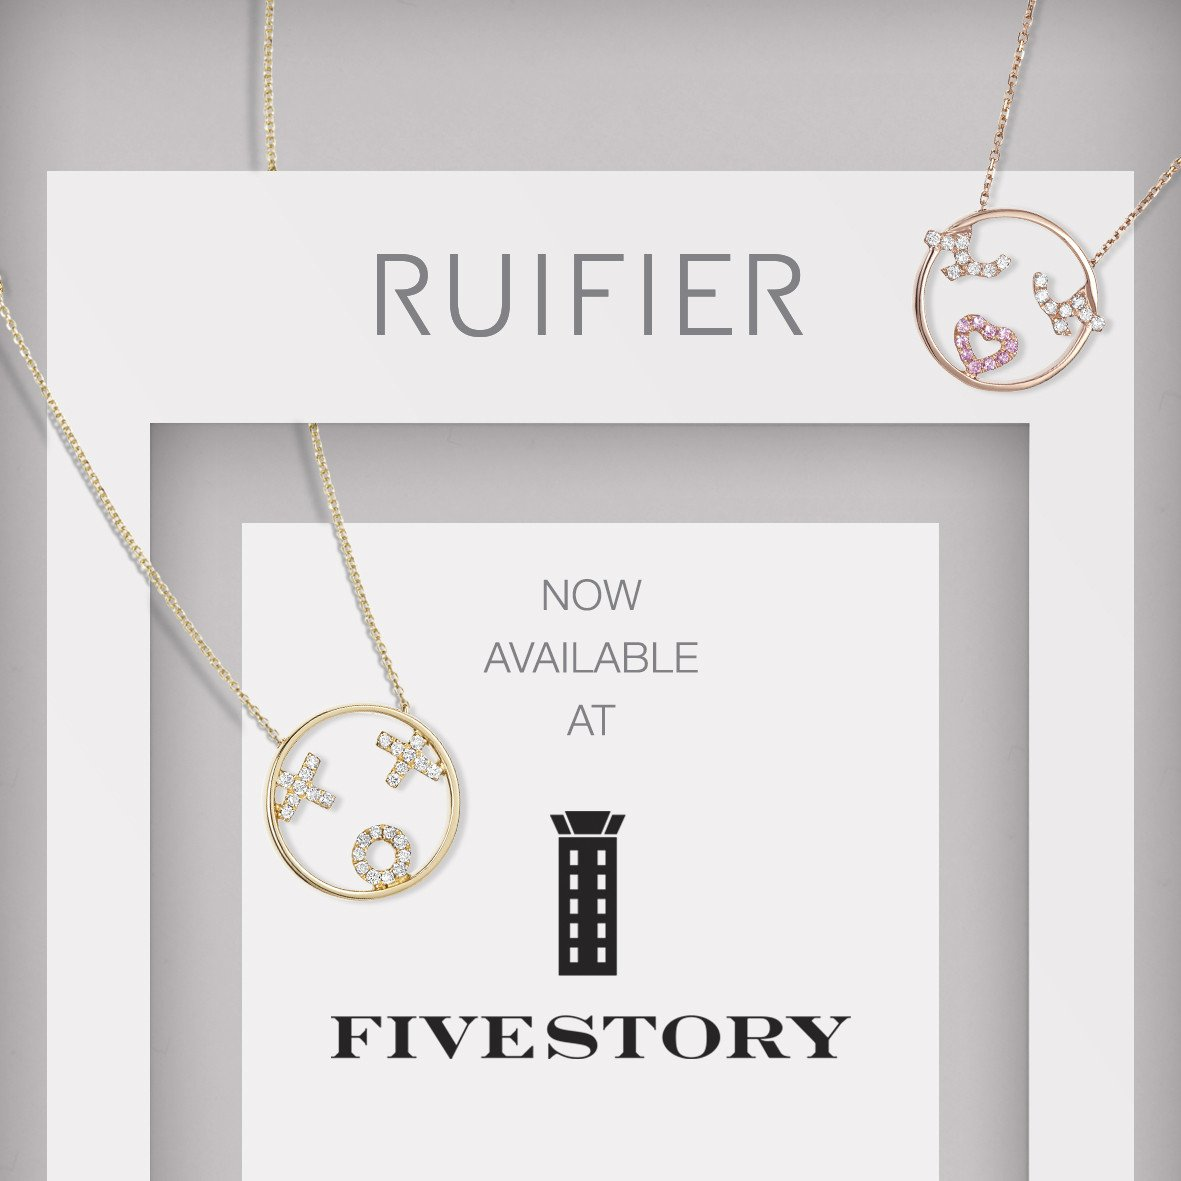 RUIFIER入驻FIVESTORY NEW YORK